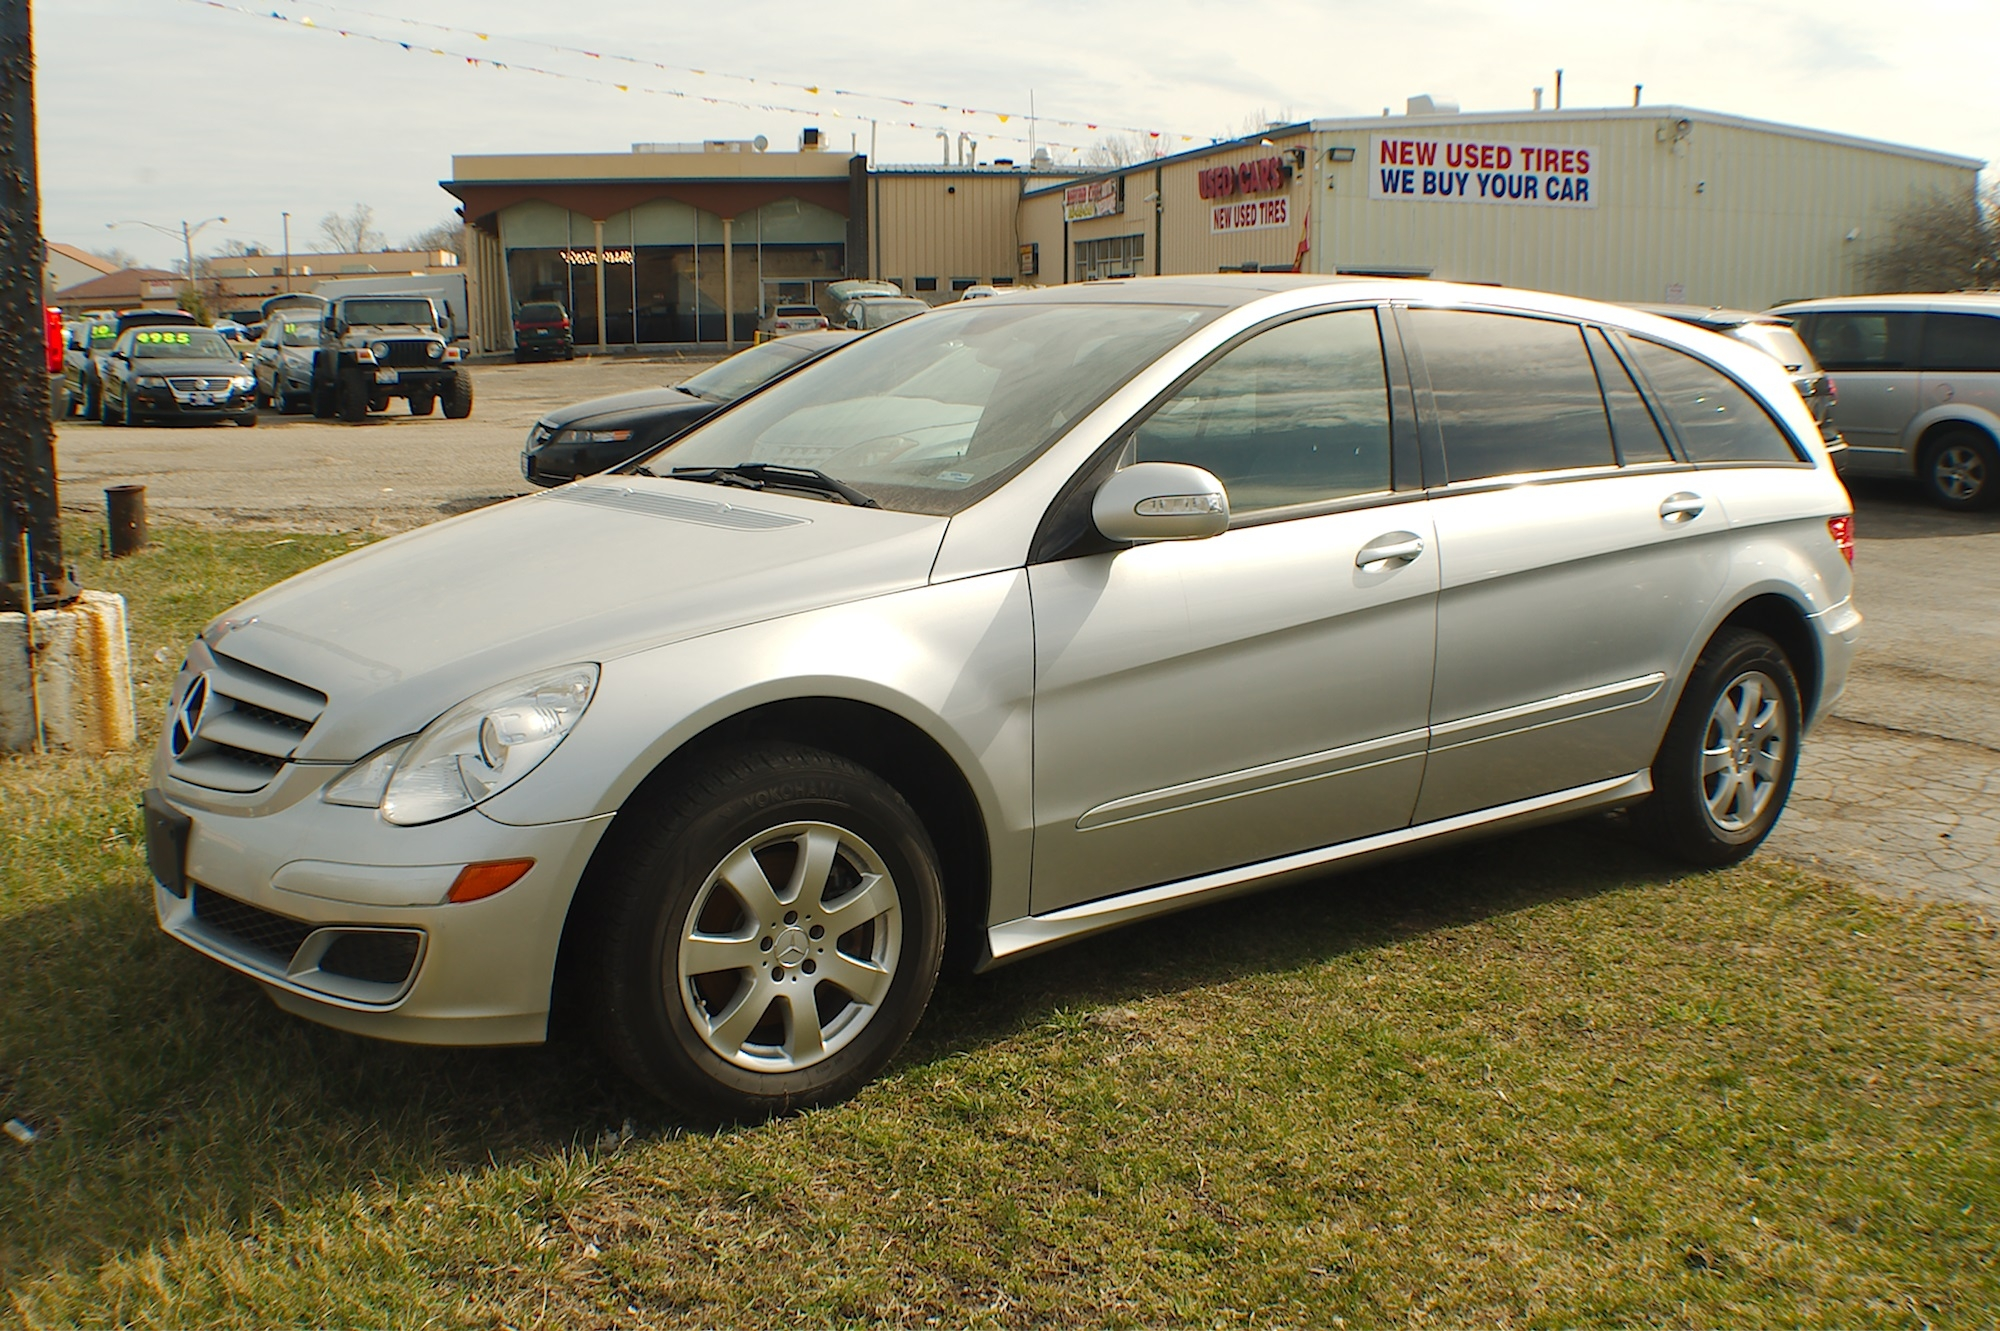 2006 Mercedes R350 4Matic Silver AWD Wagon Sale Antioch Zion Waukegan Lake County Illinois